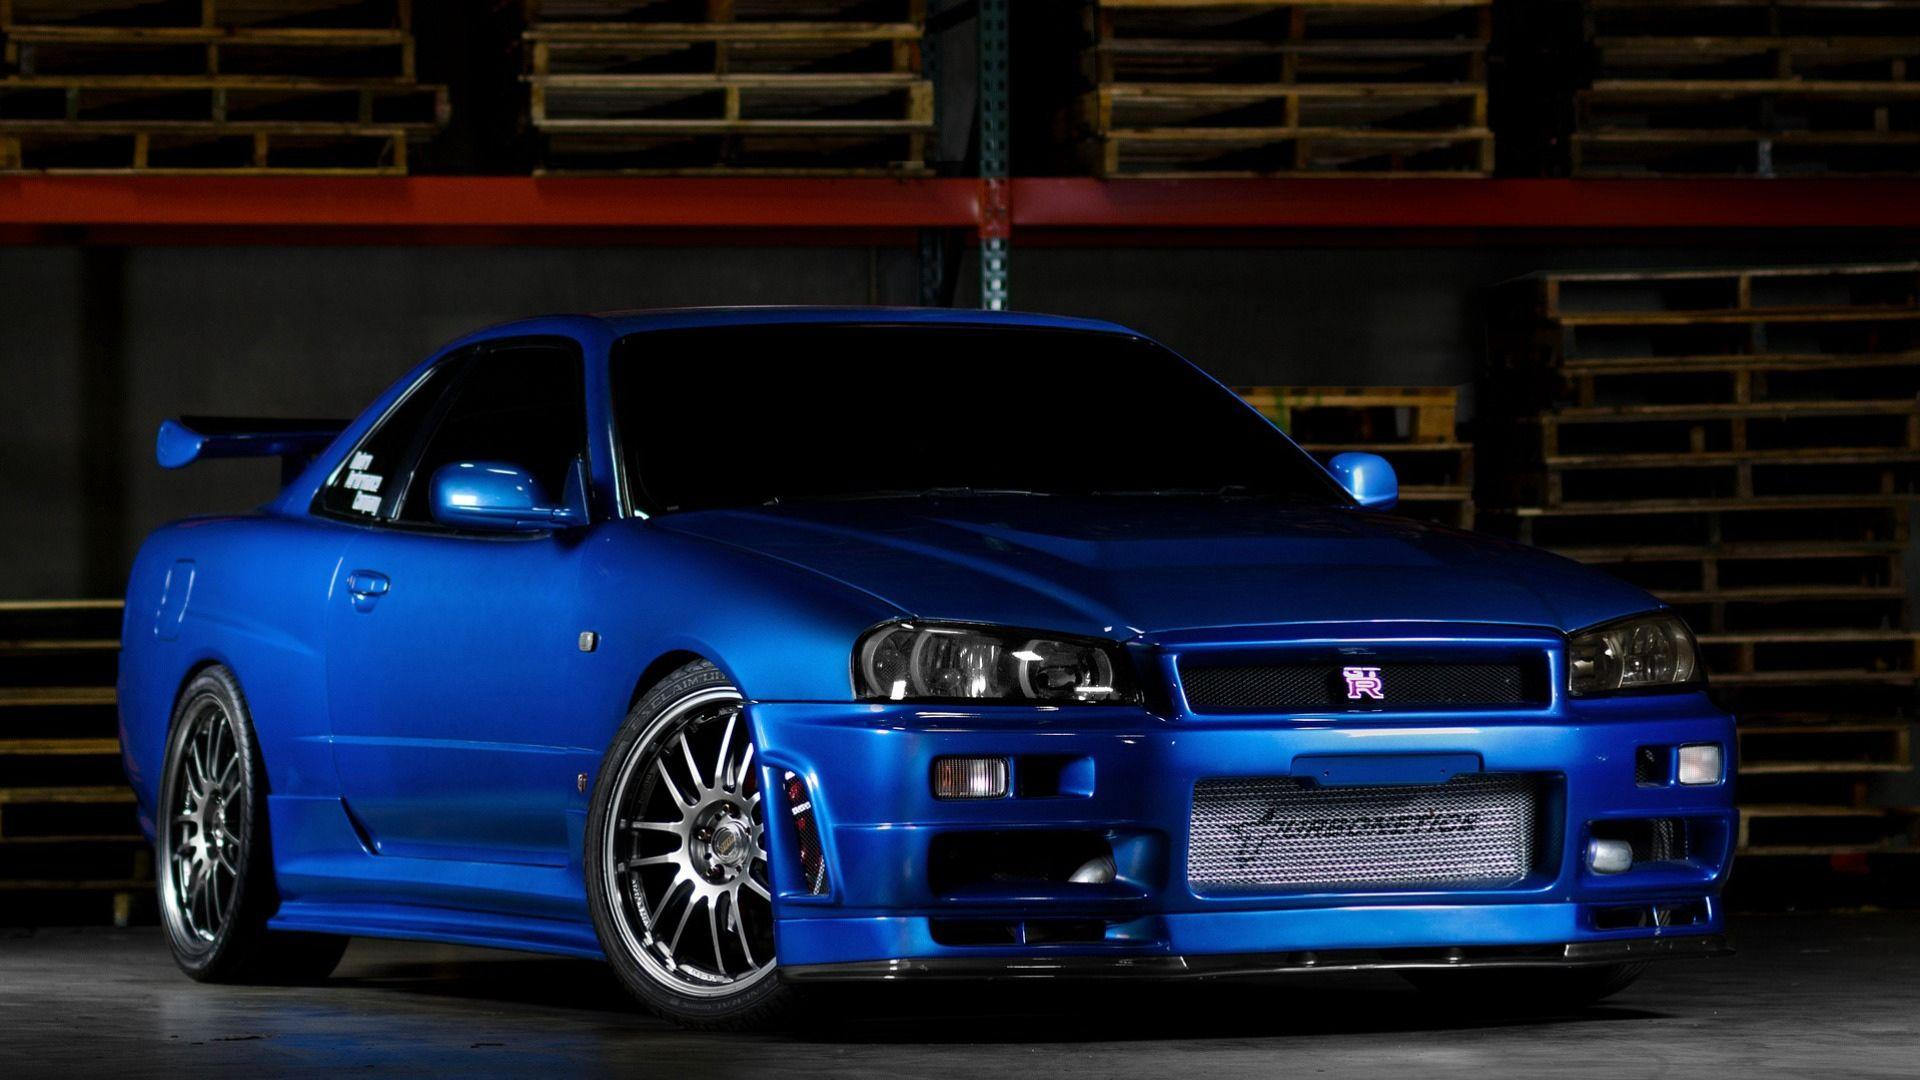 Download wallpaper nissan skyline gtr r34 blue front